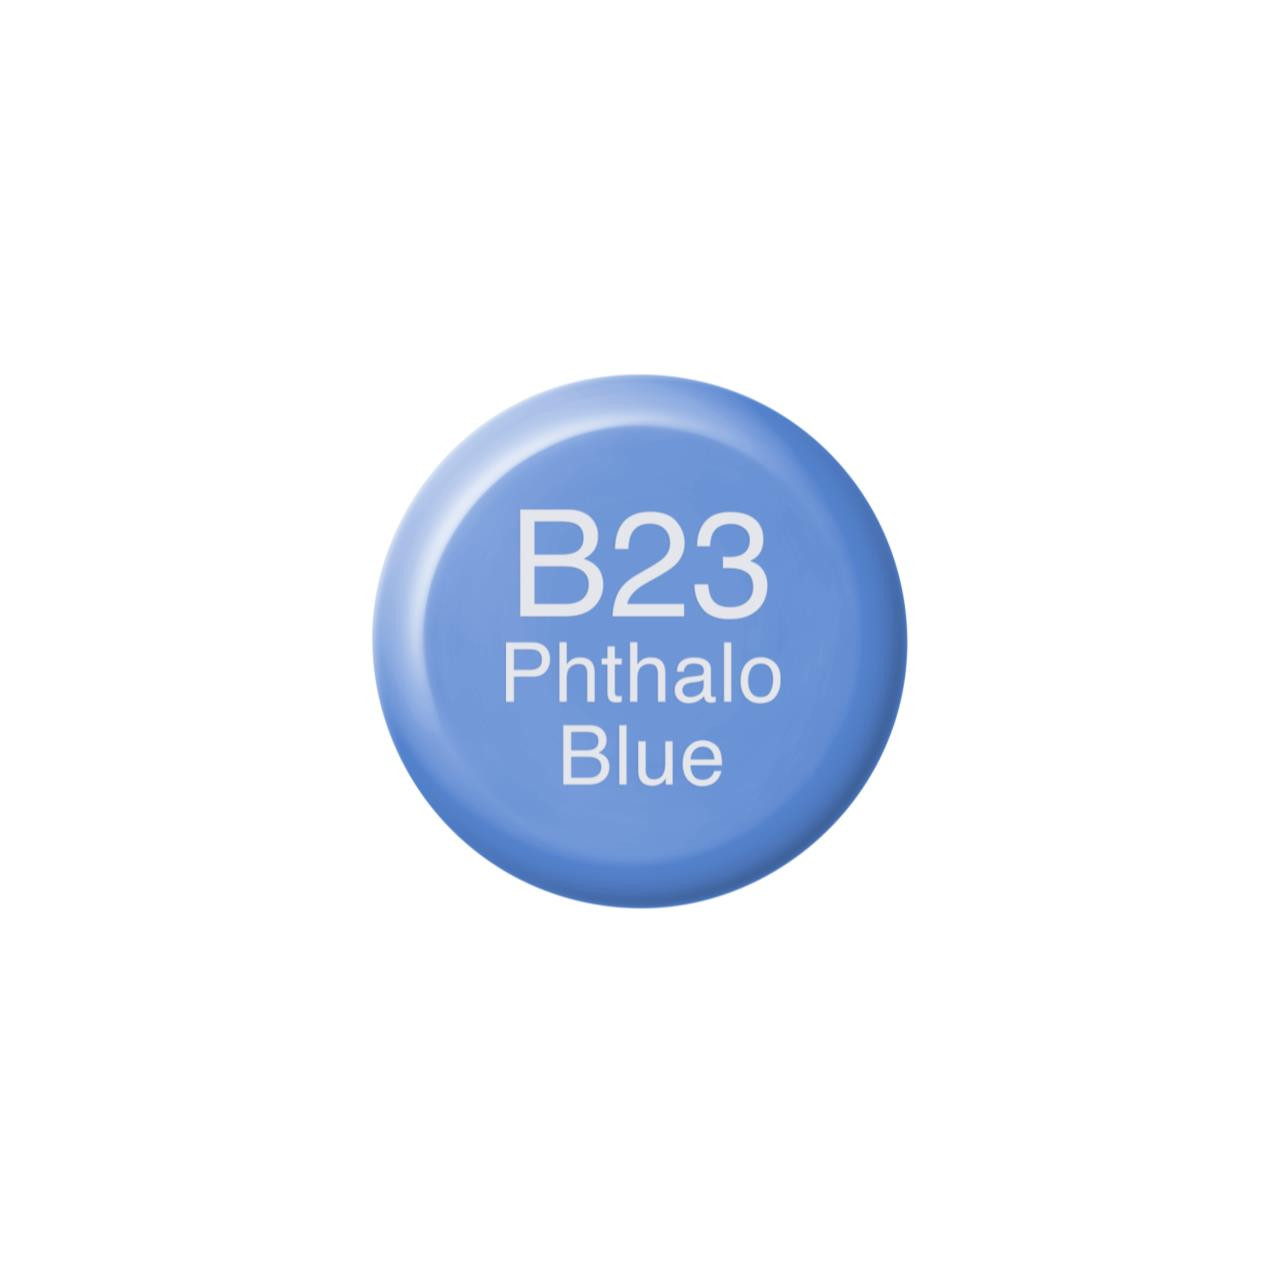 B23 Phthalo Blue, Copic Ink - 4511338055939